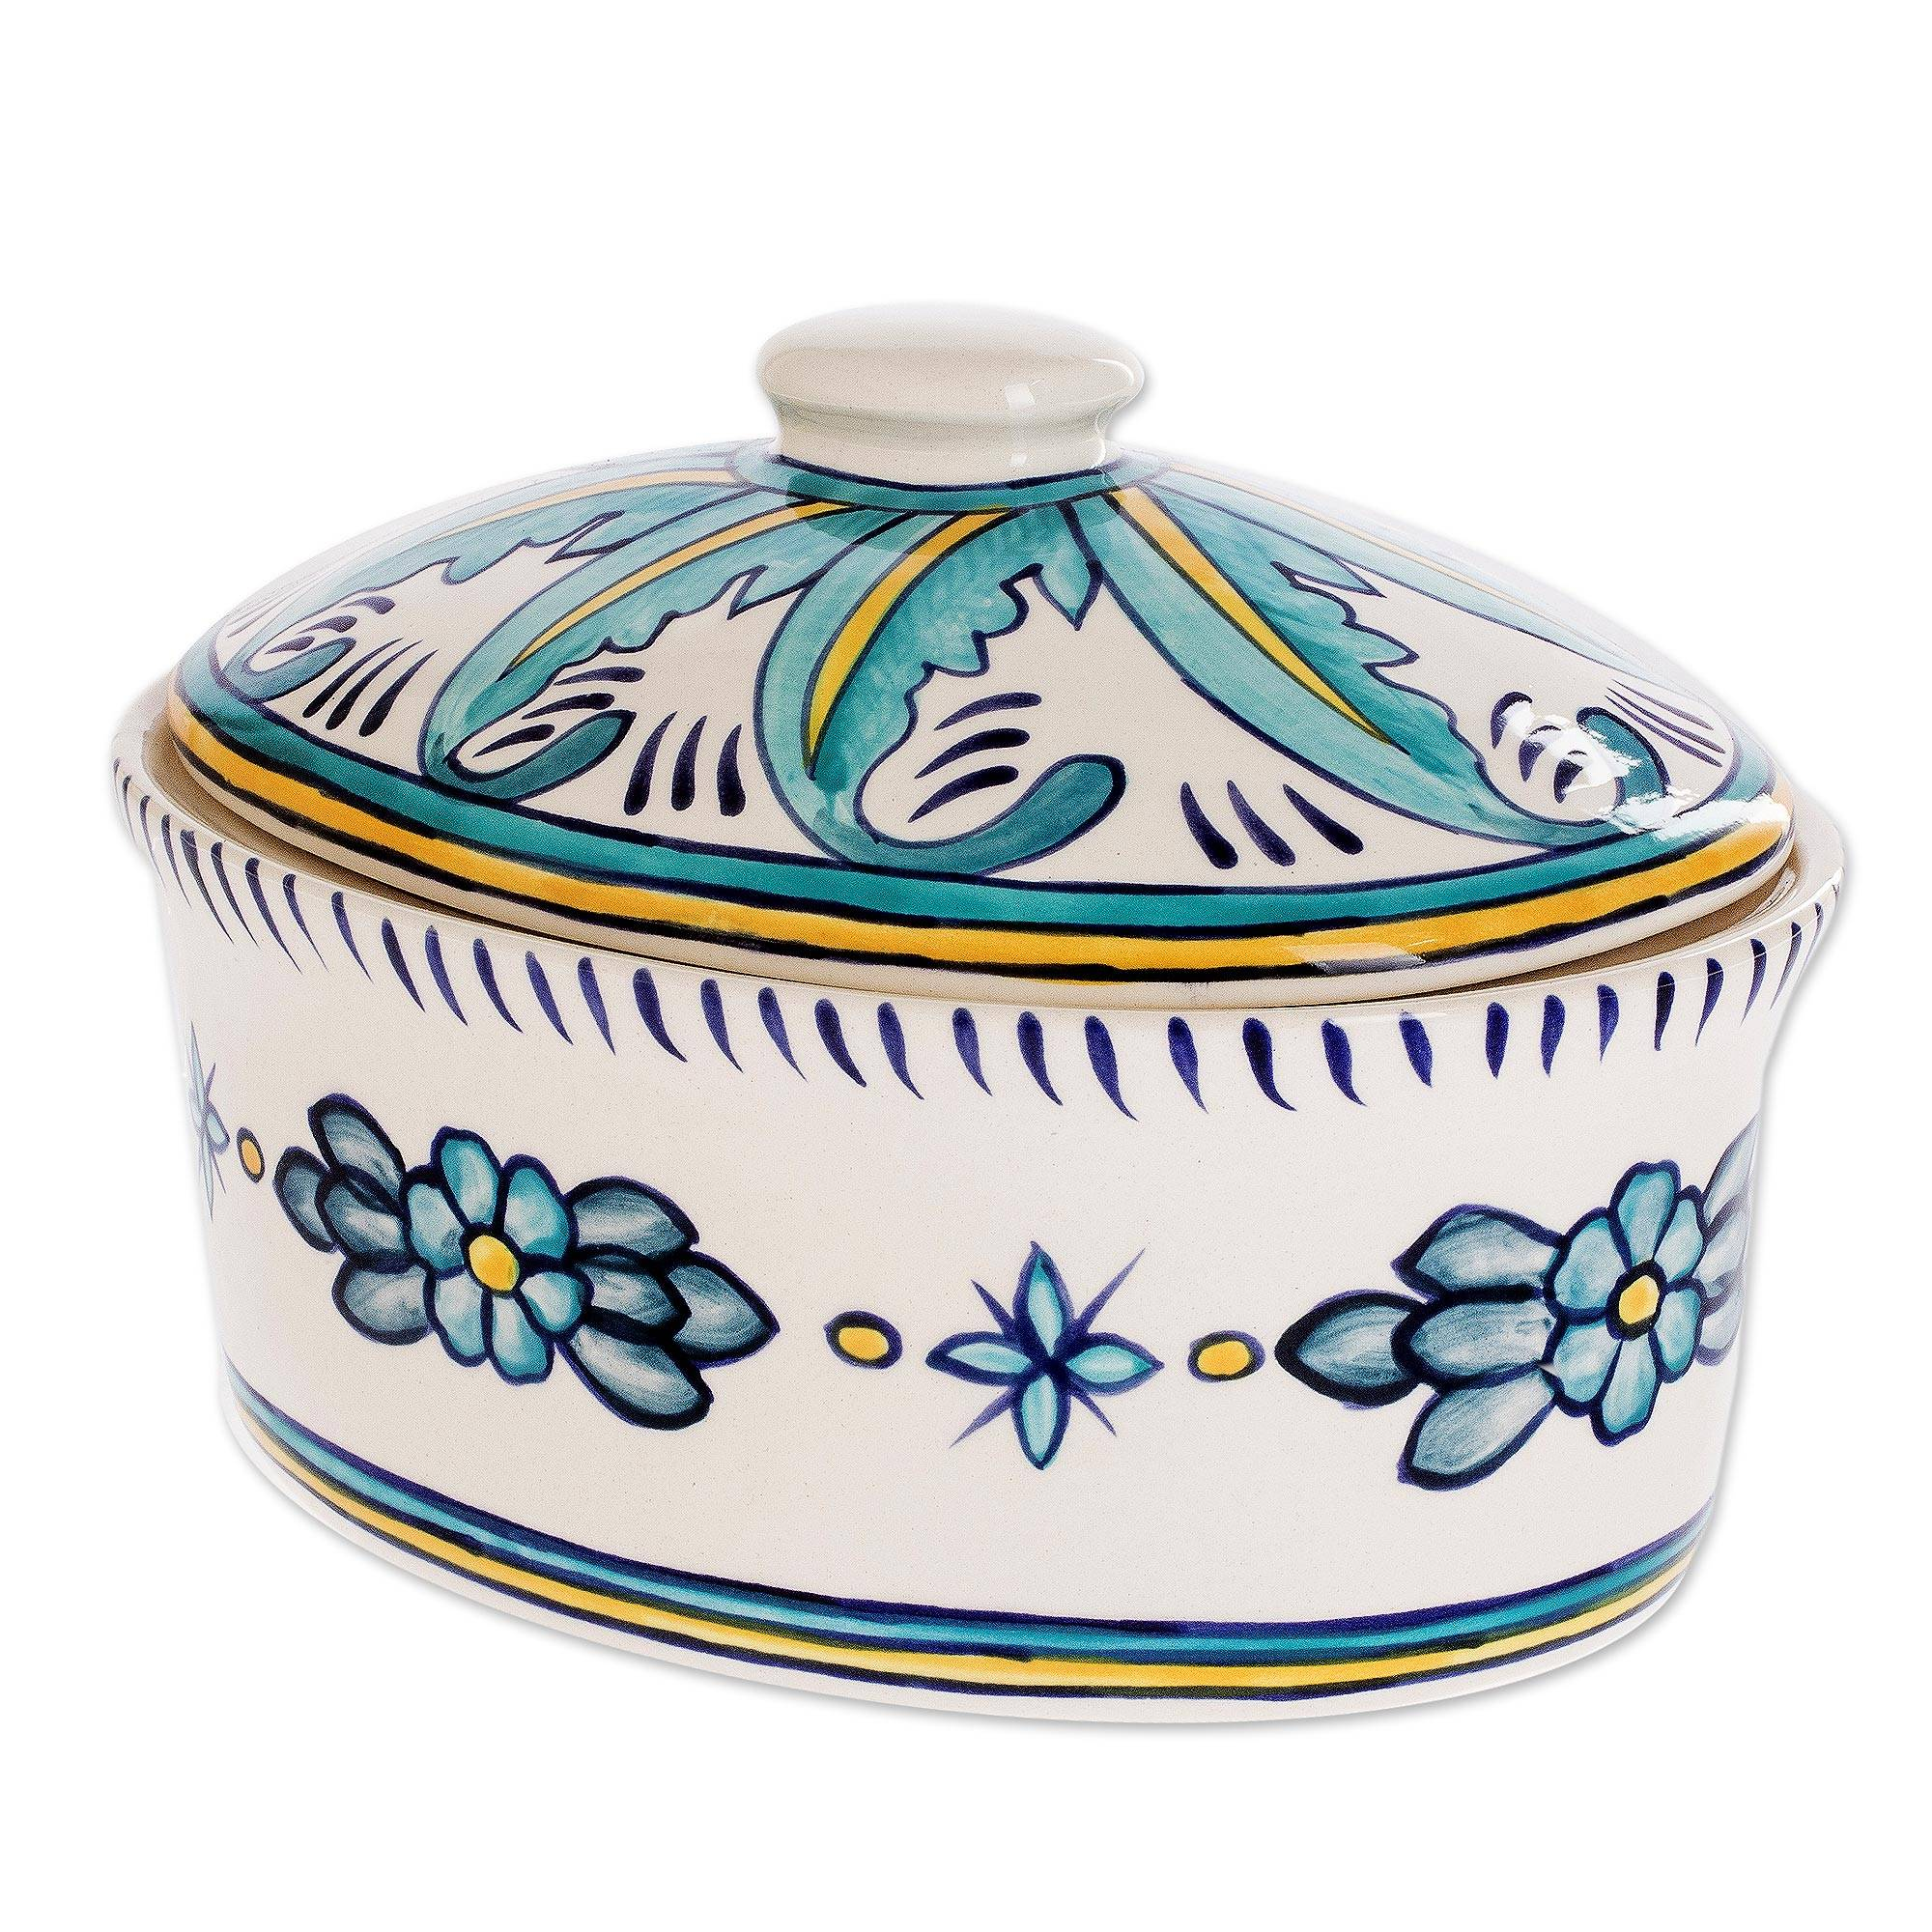 UNICEF Market | Ceramic Handcrafted Oven-Safe Oval Casserole Dish and Lid -  Quehueche